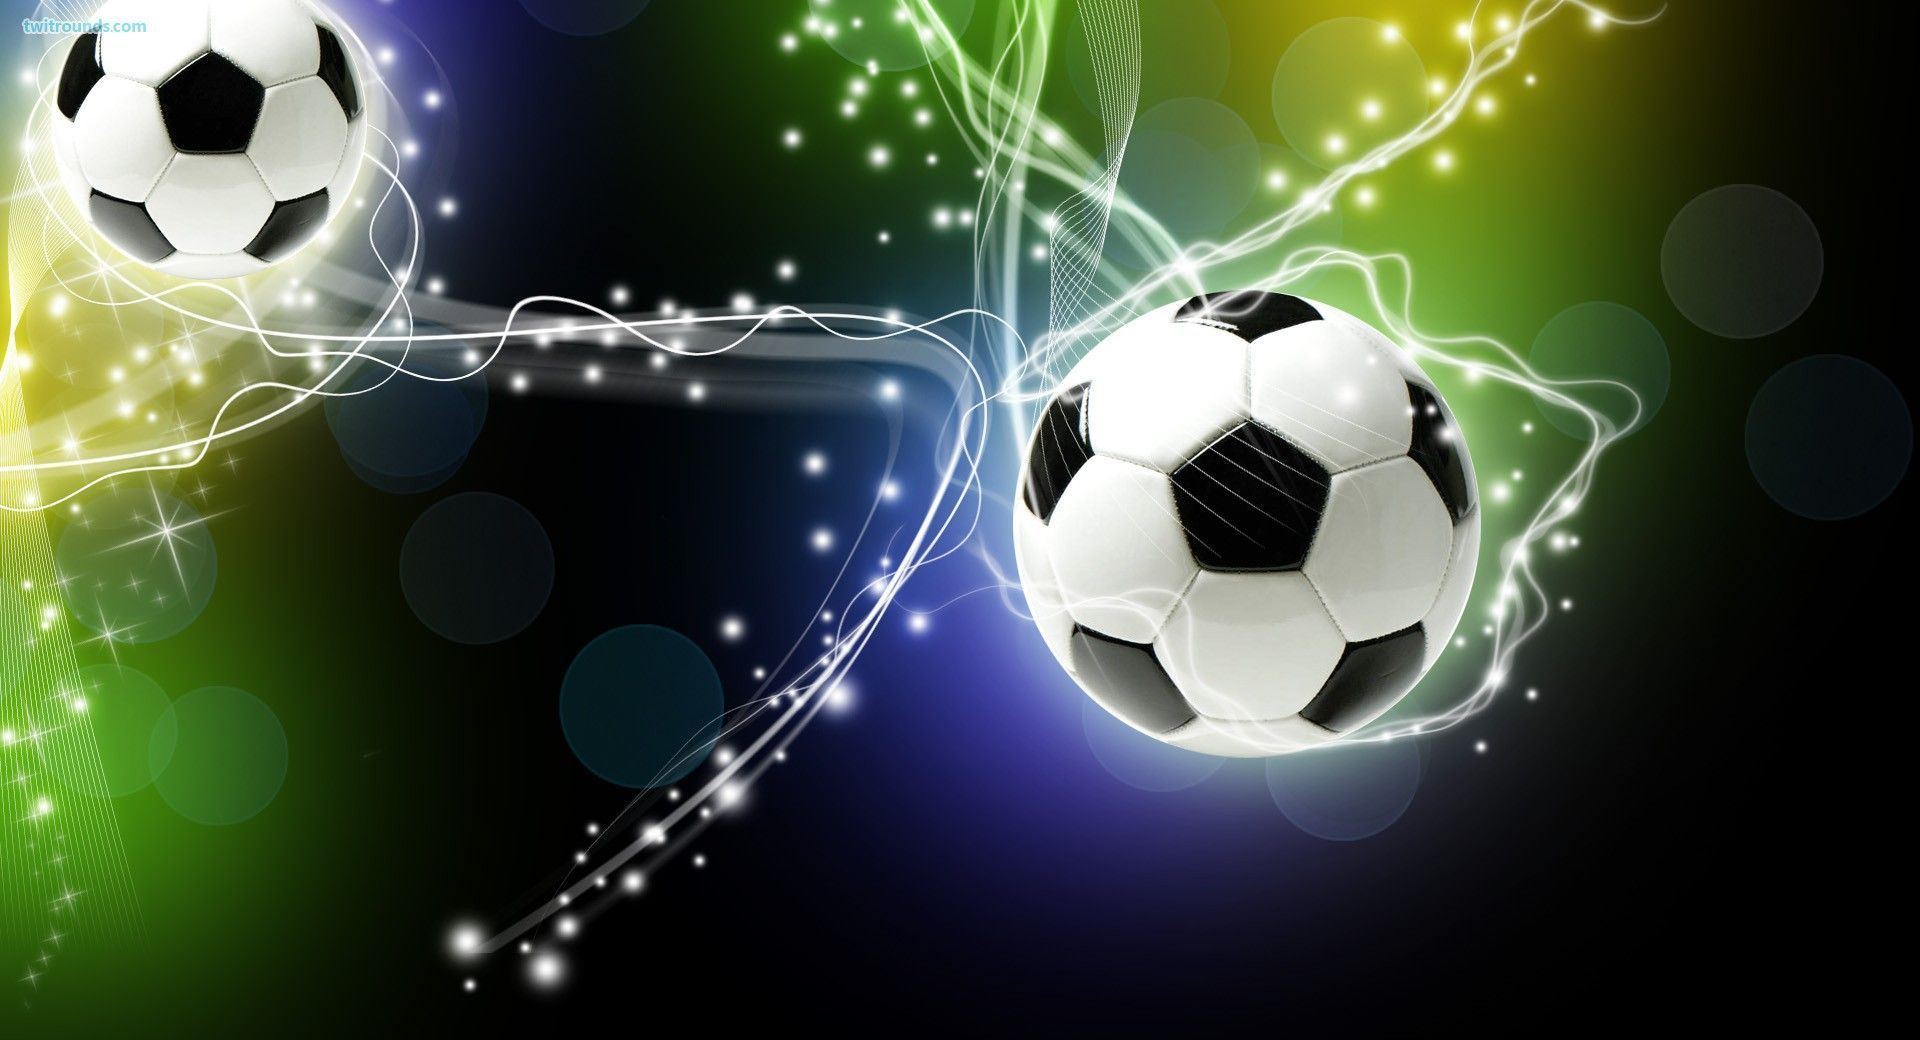 collection of cool soccer wallpaper on hdwallpapers 1920×1080 cool